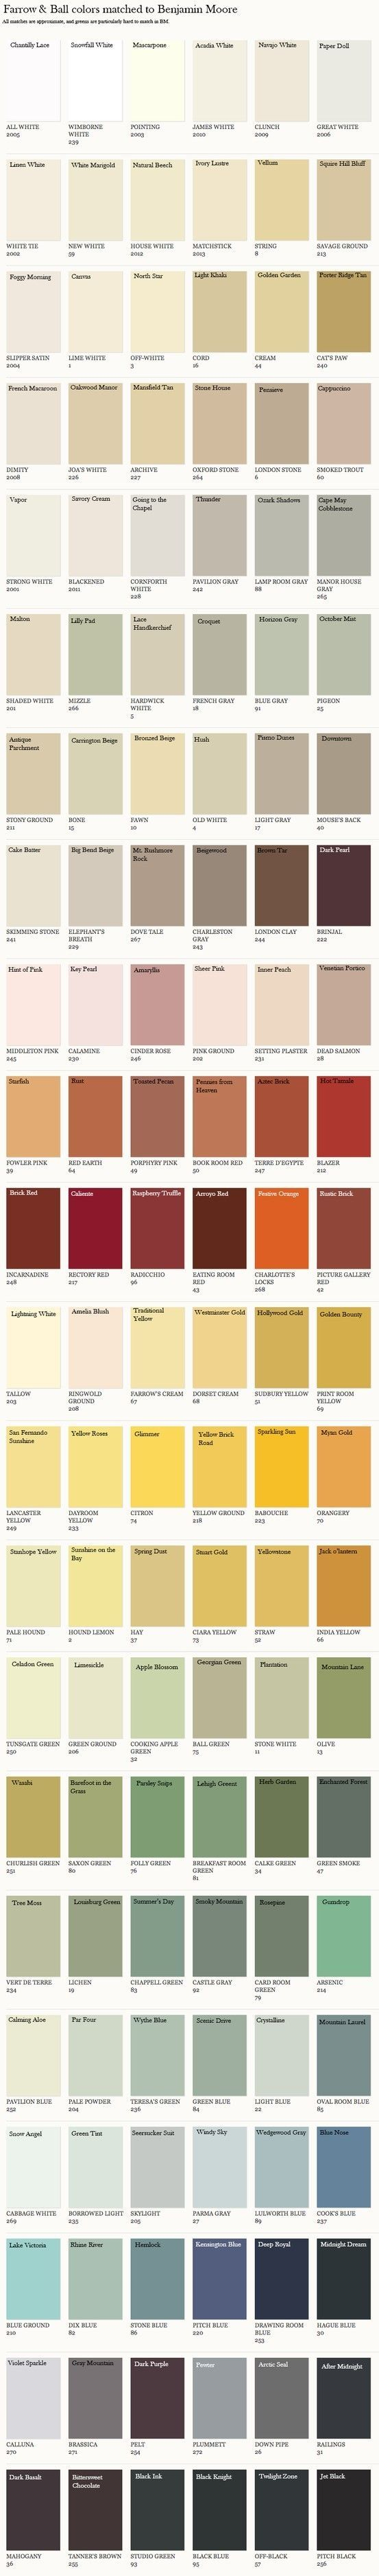 Farrow ball paint colors matched to benjamin moore for Where to buy farrow ball paint